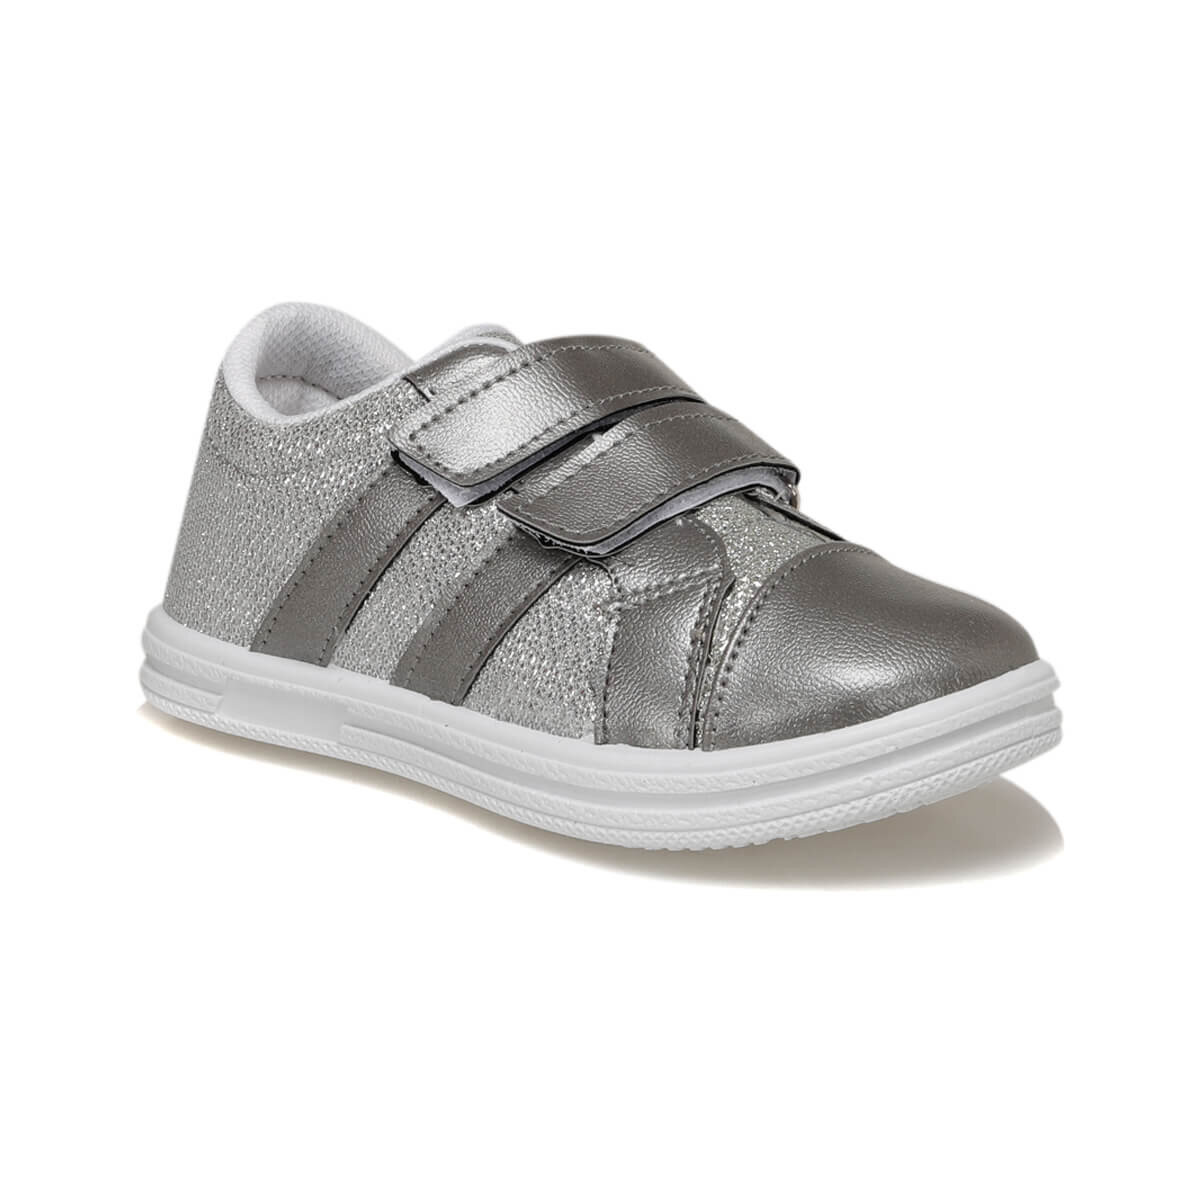 FLO 92.511749.P Silver Female Child Sneaker Shoes Polaris